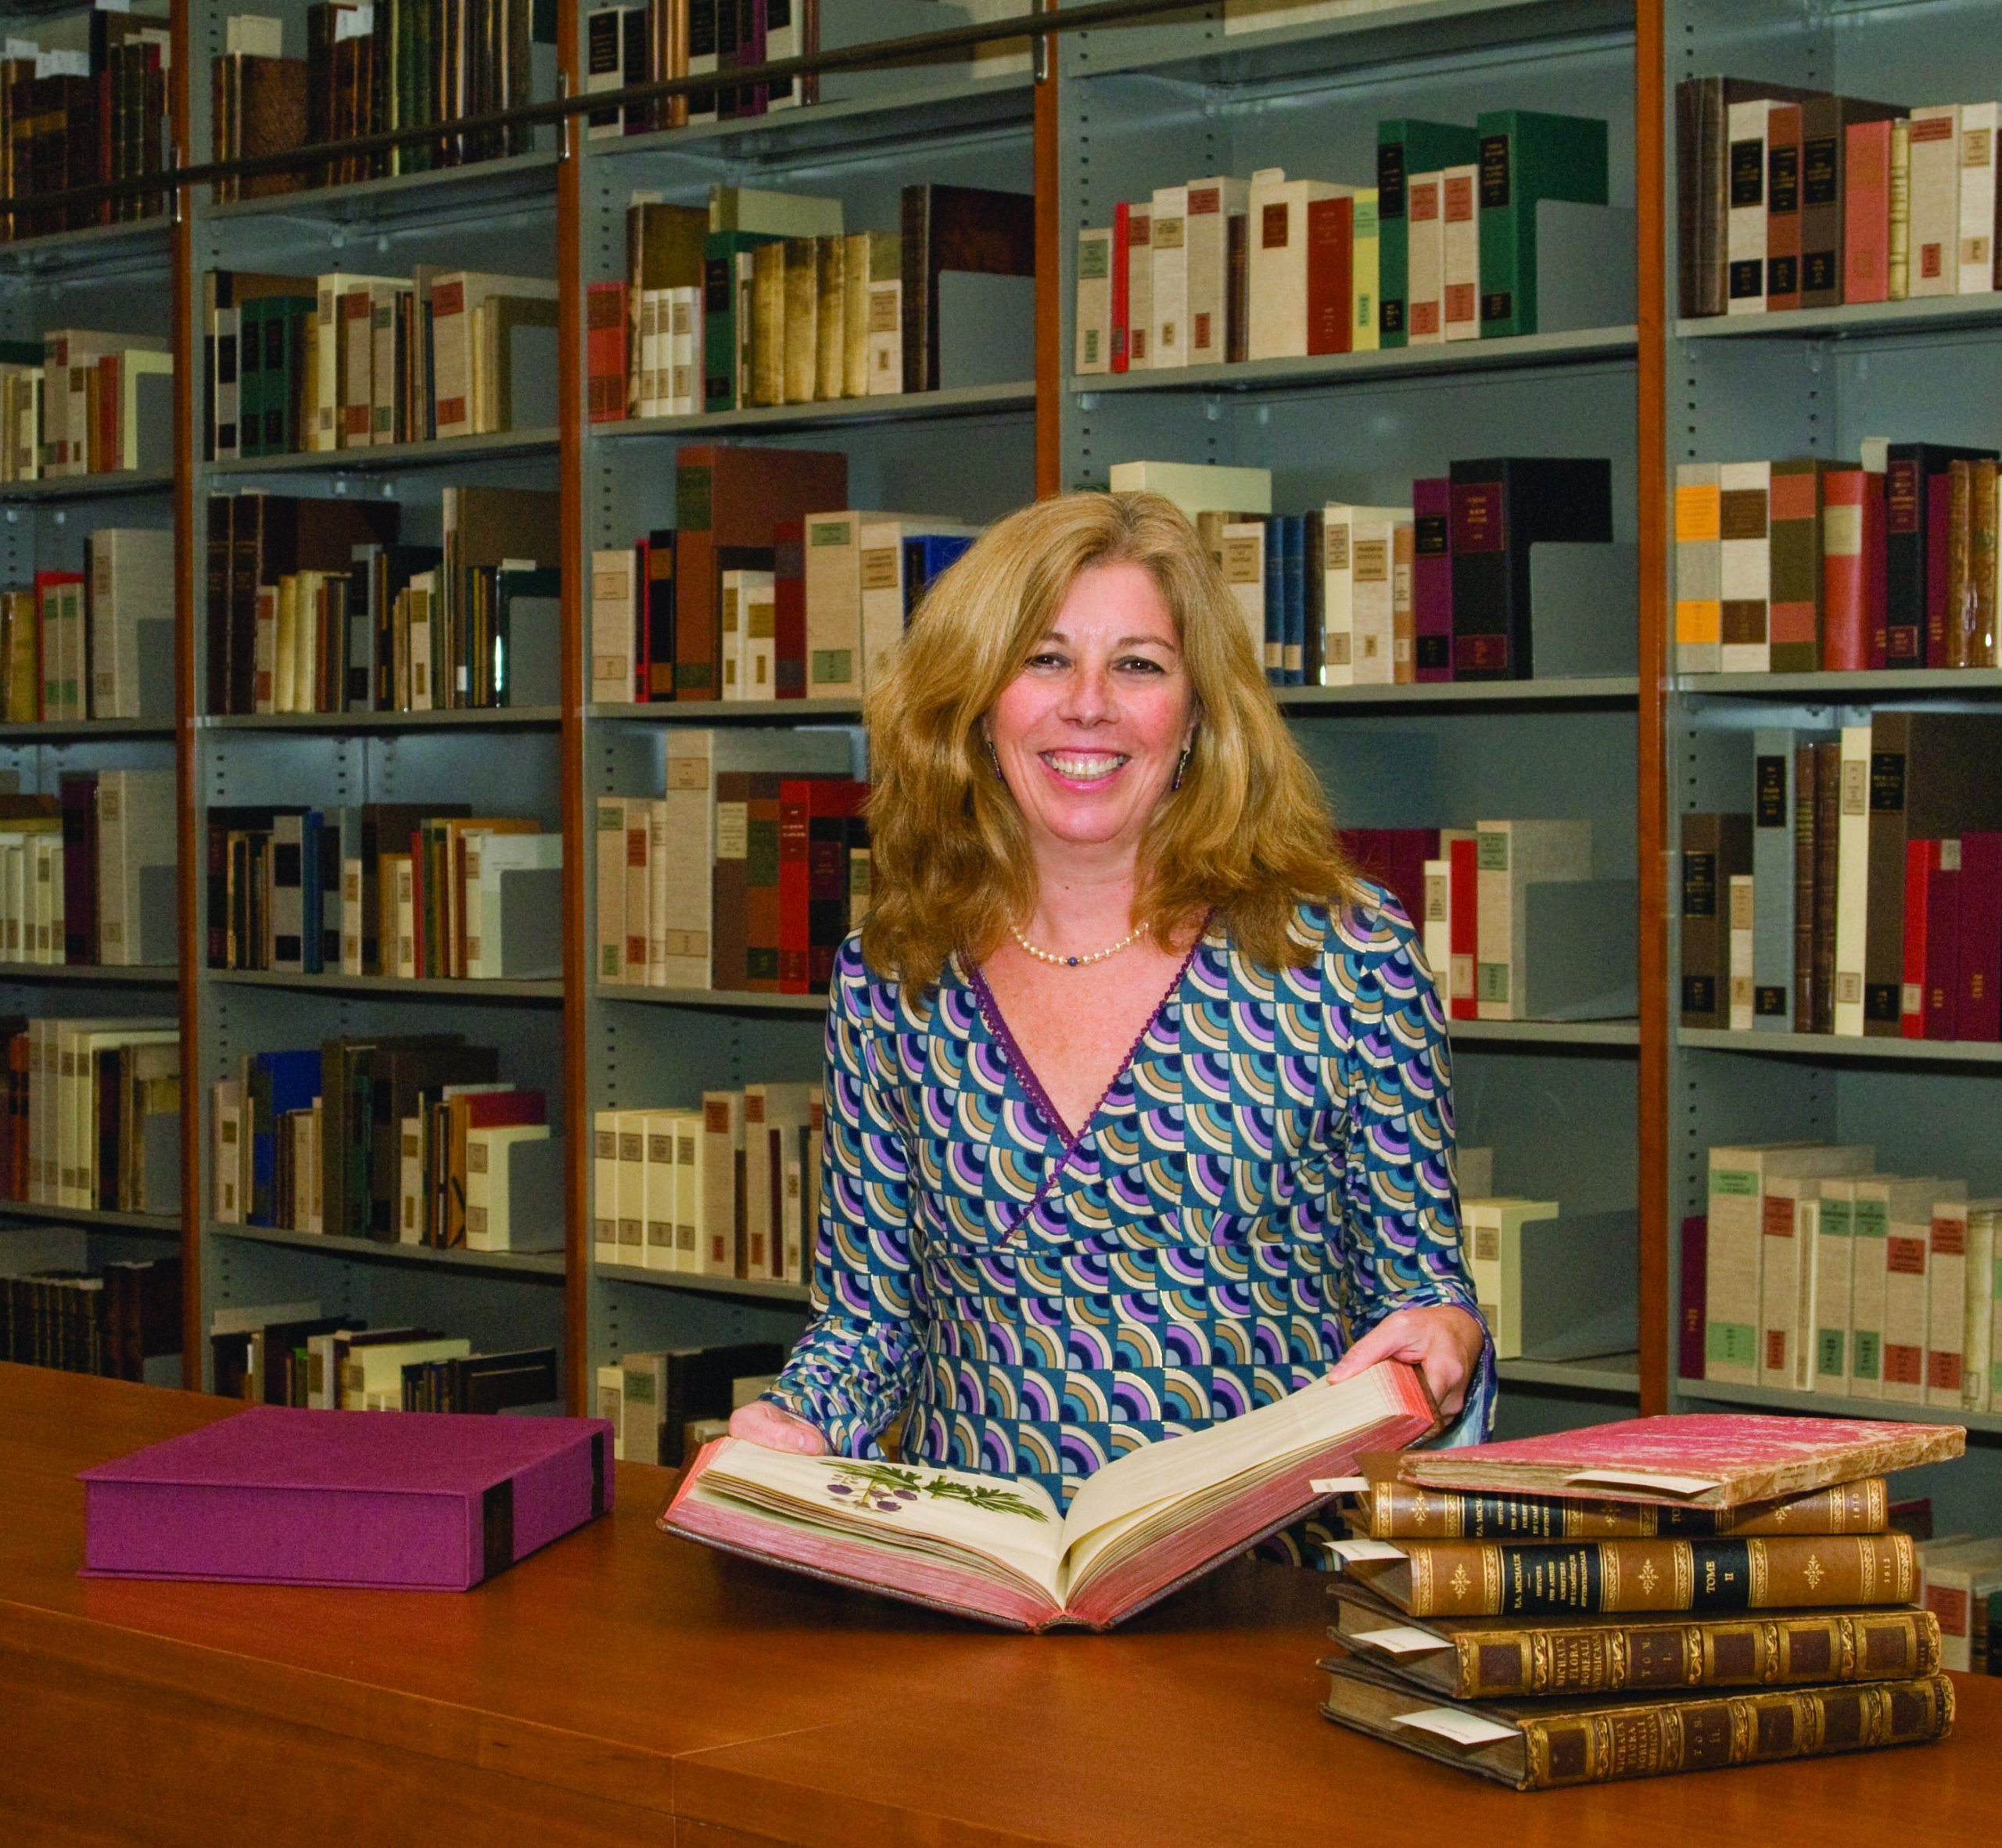 A person with shoulder length blonde hair standing in front of a large wooden table holding open a large book with a plant illustration. A pile of books is on the table next, and a bookshelf full of books is in the background.